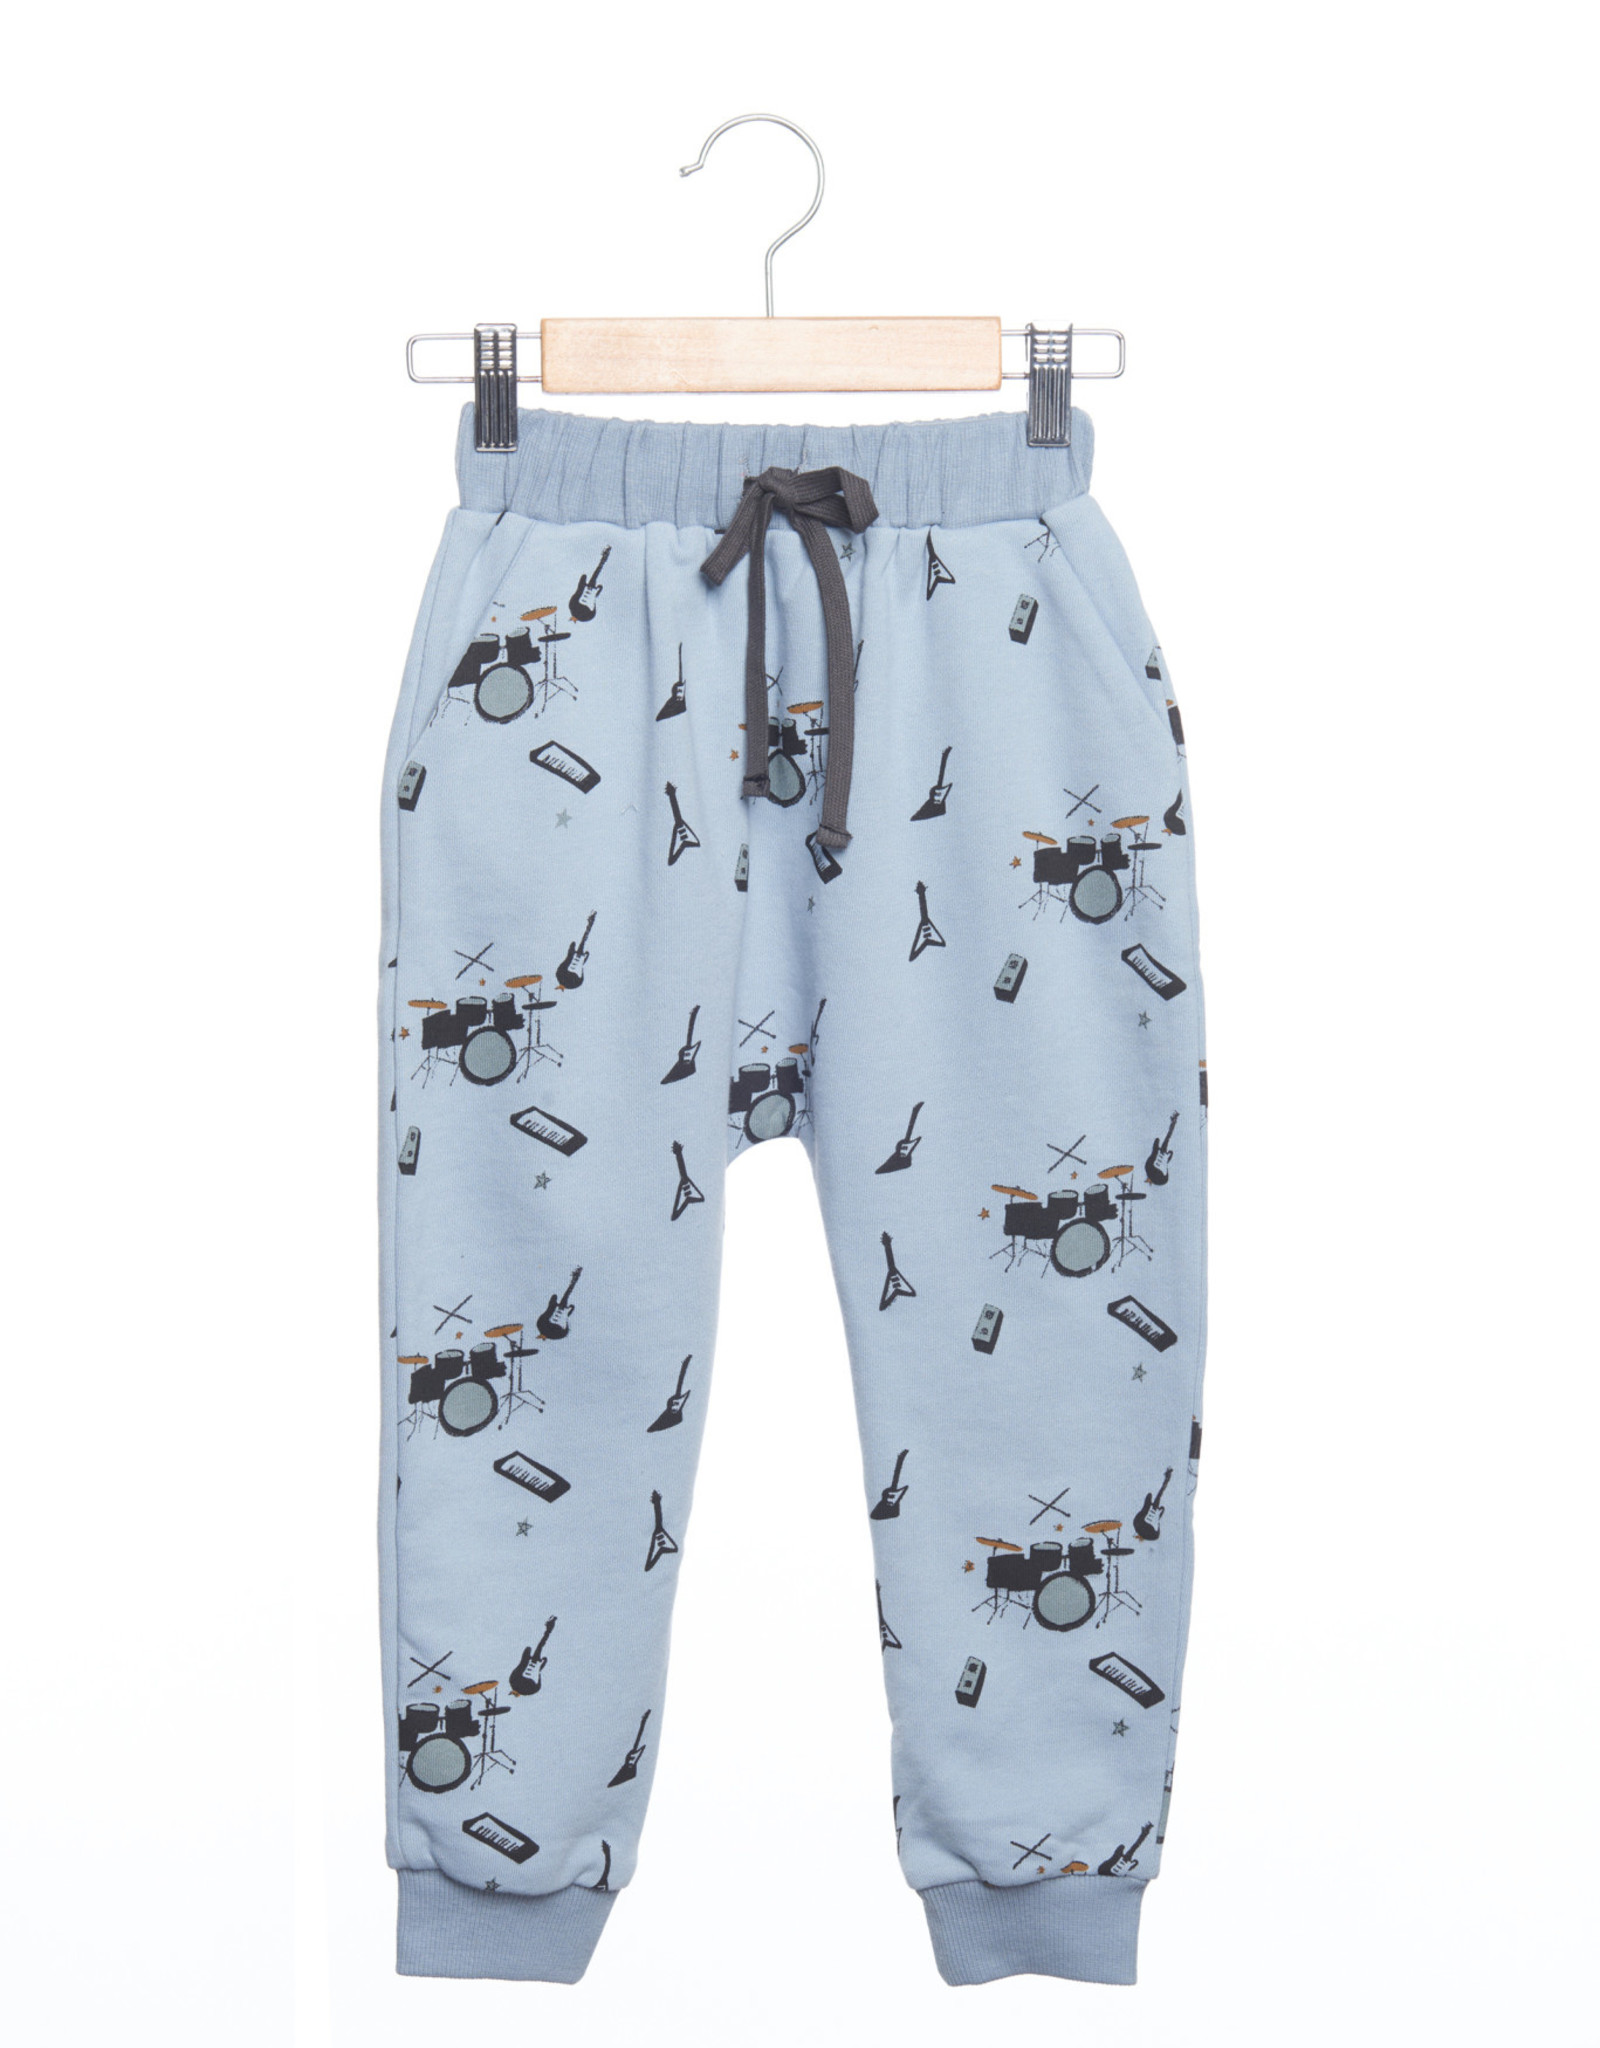 Siaomimi sweatpants- stone band